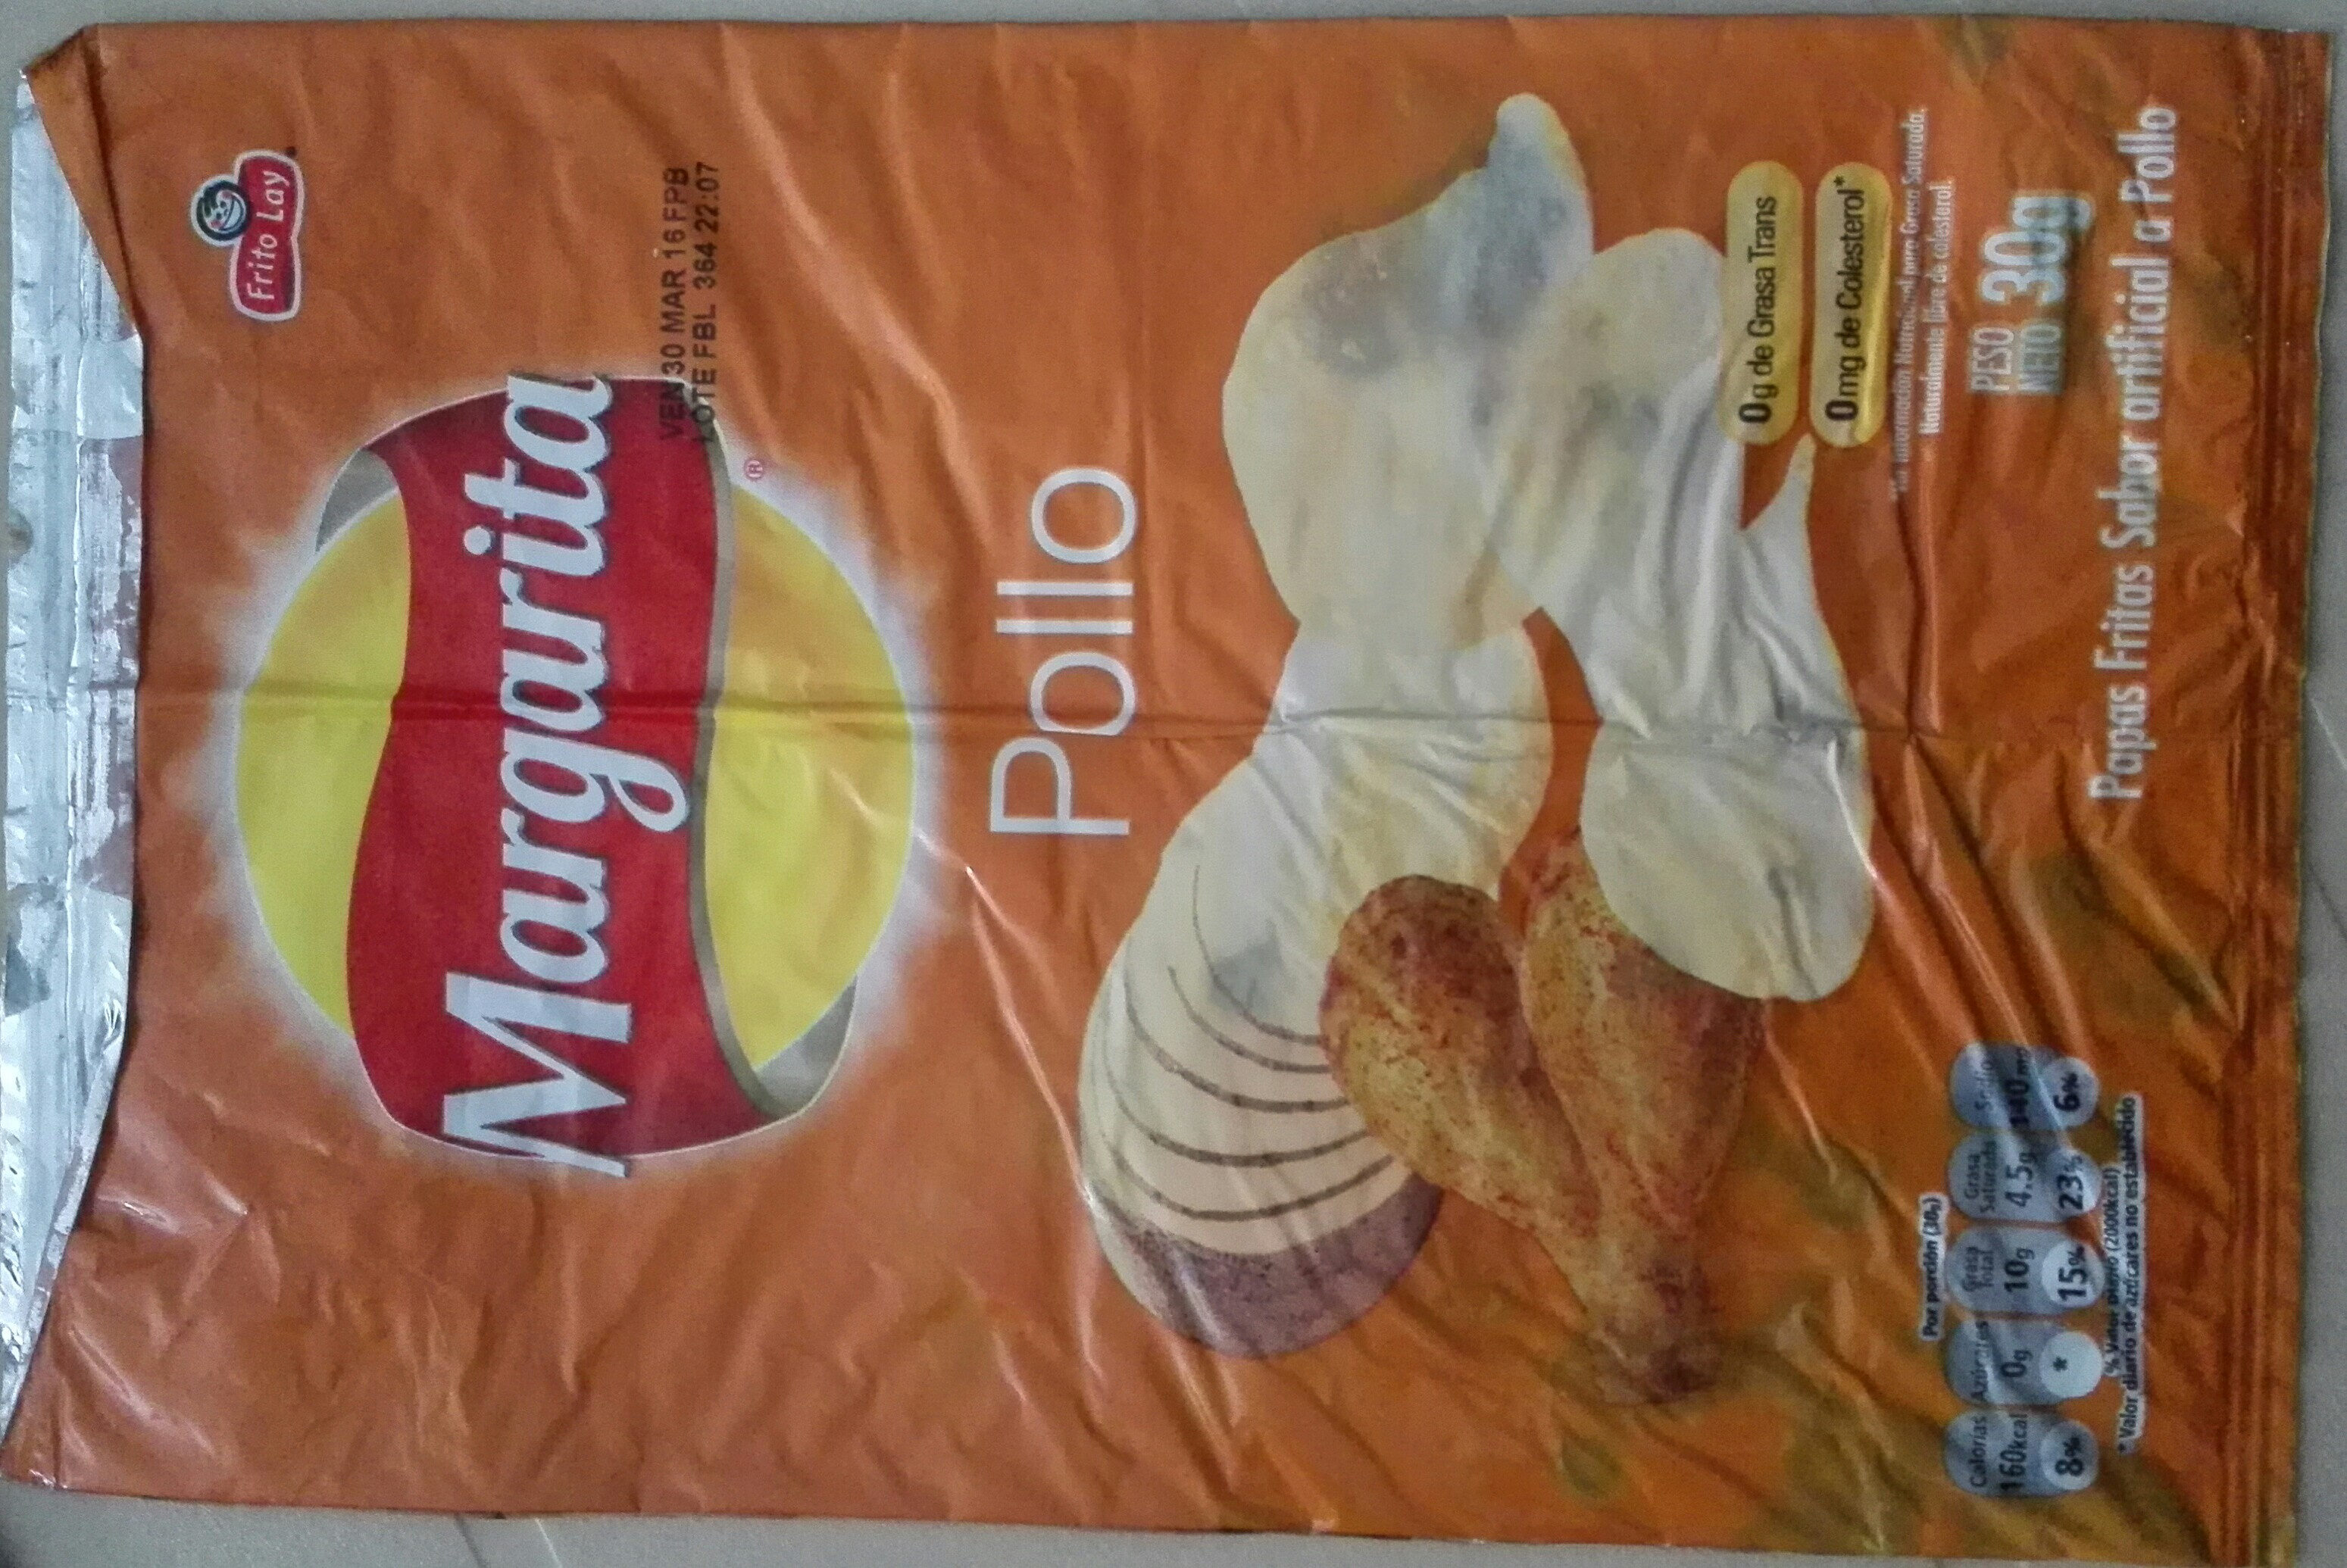 papas fritas sabor artificial a pollo - Product